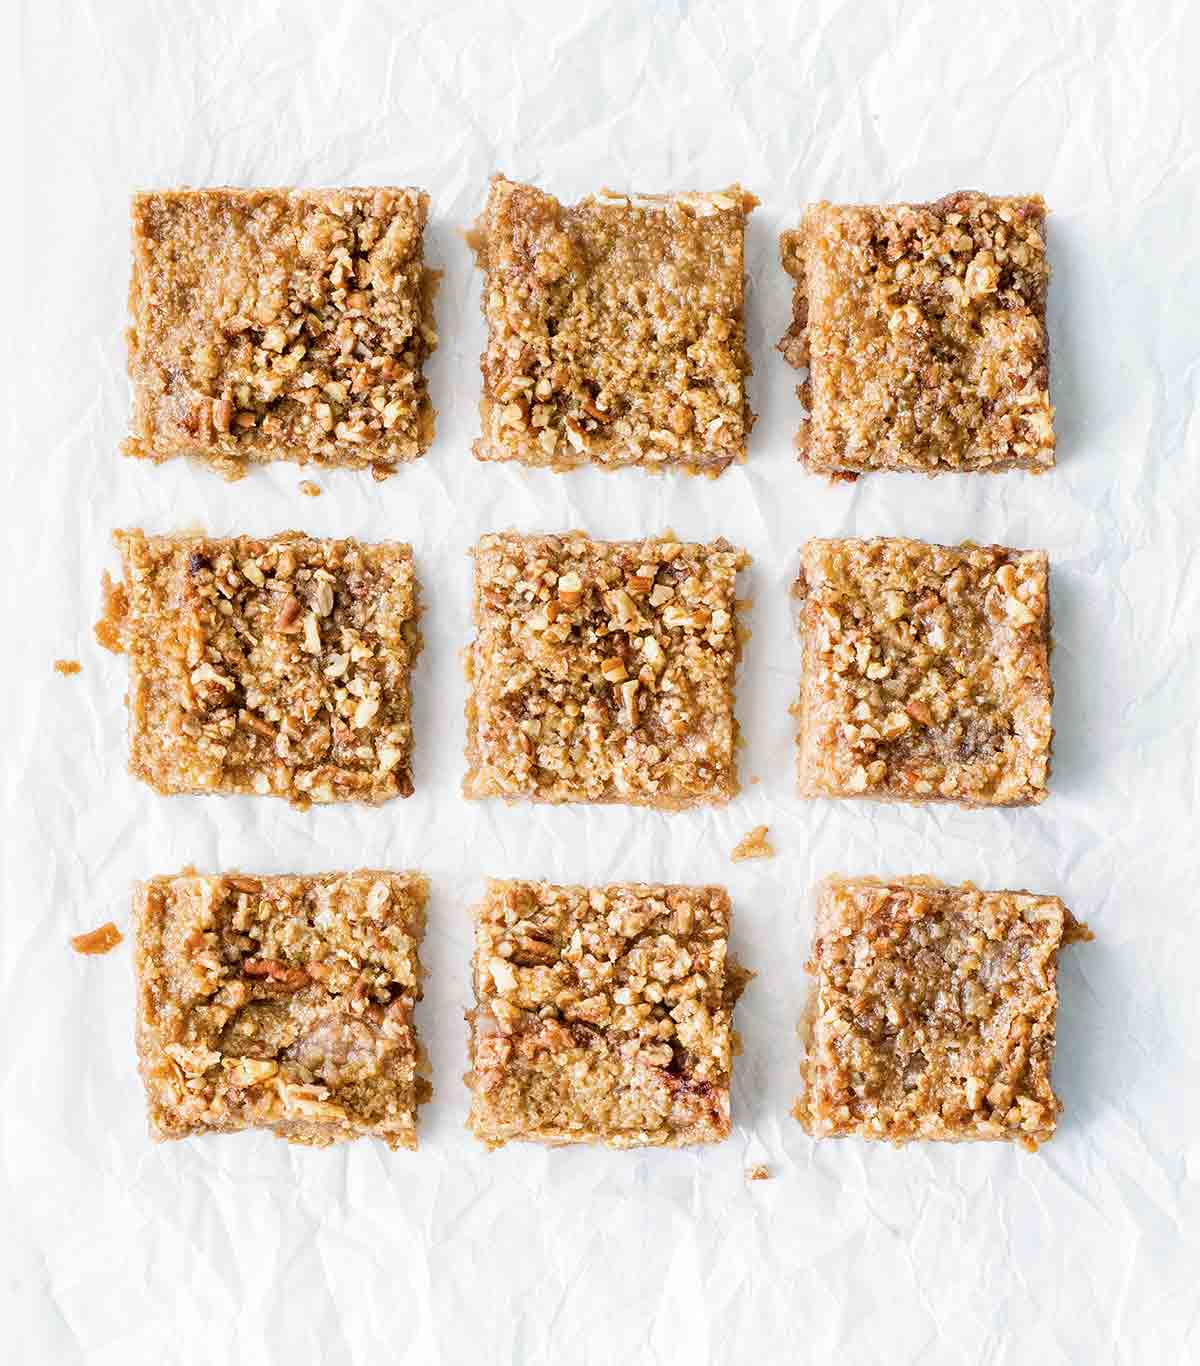 Nine apple crumb bars on a white sheet.